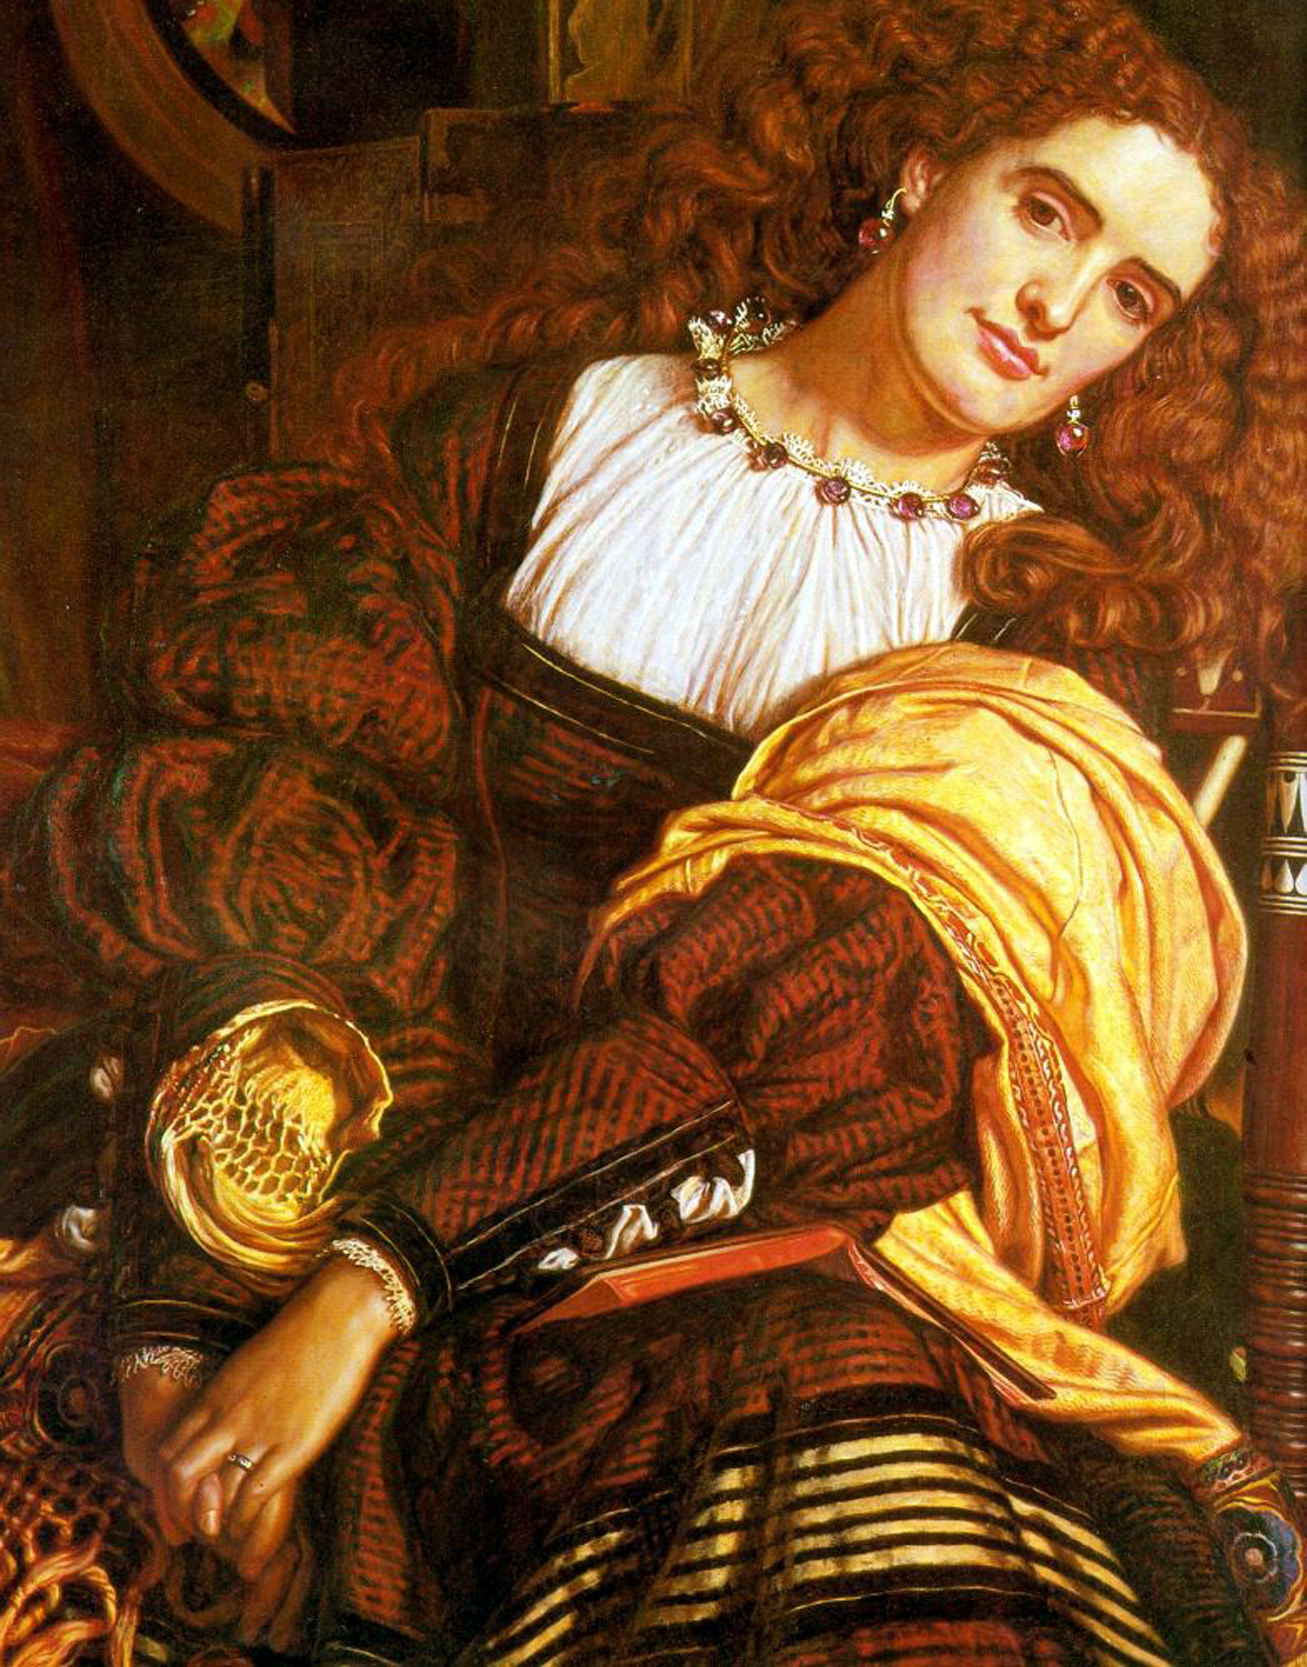 william holman hunt 1827 1910 il dolce far niente 1866. Black Bedroom Furniture Sets. Home Design Ideas